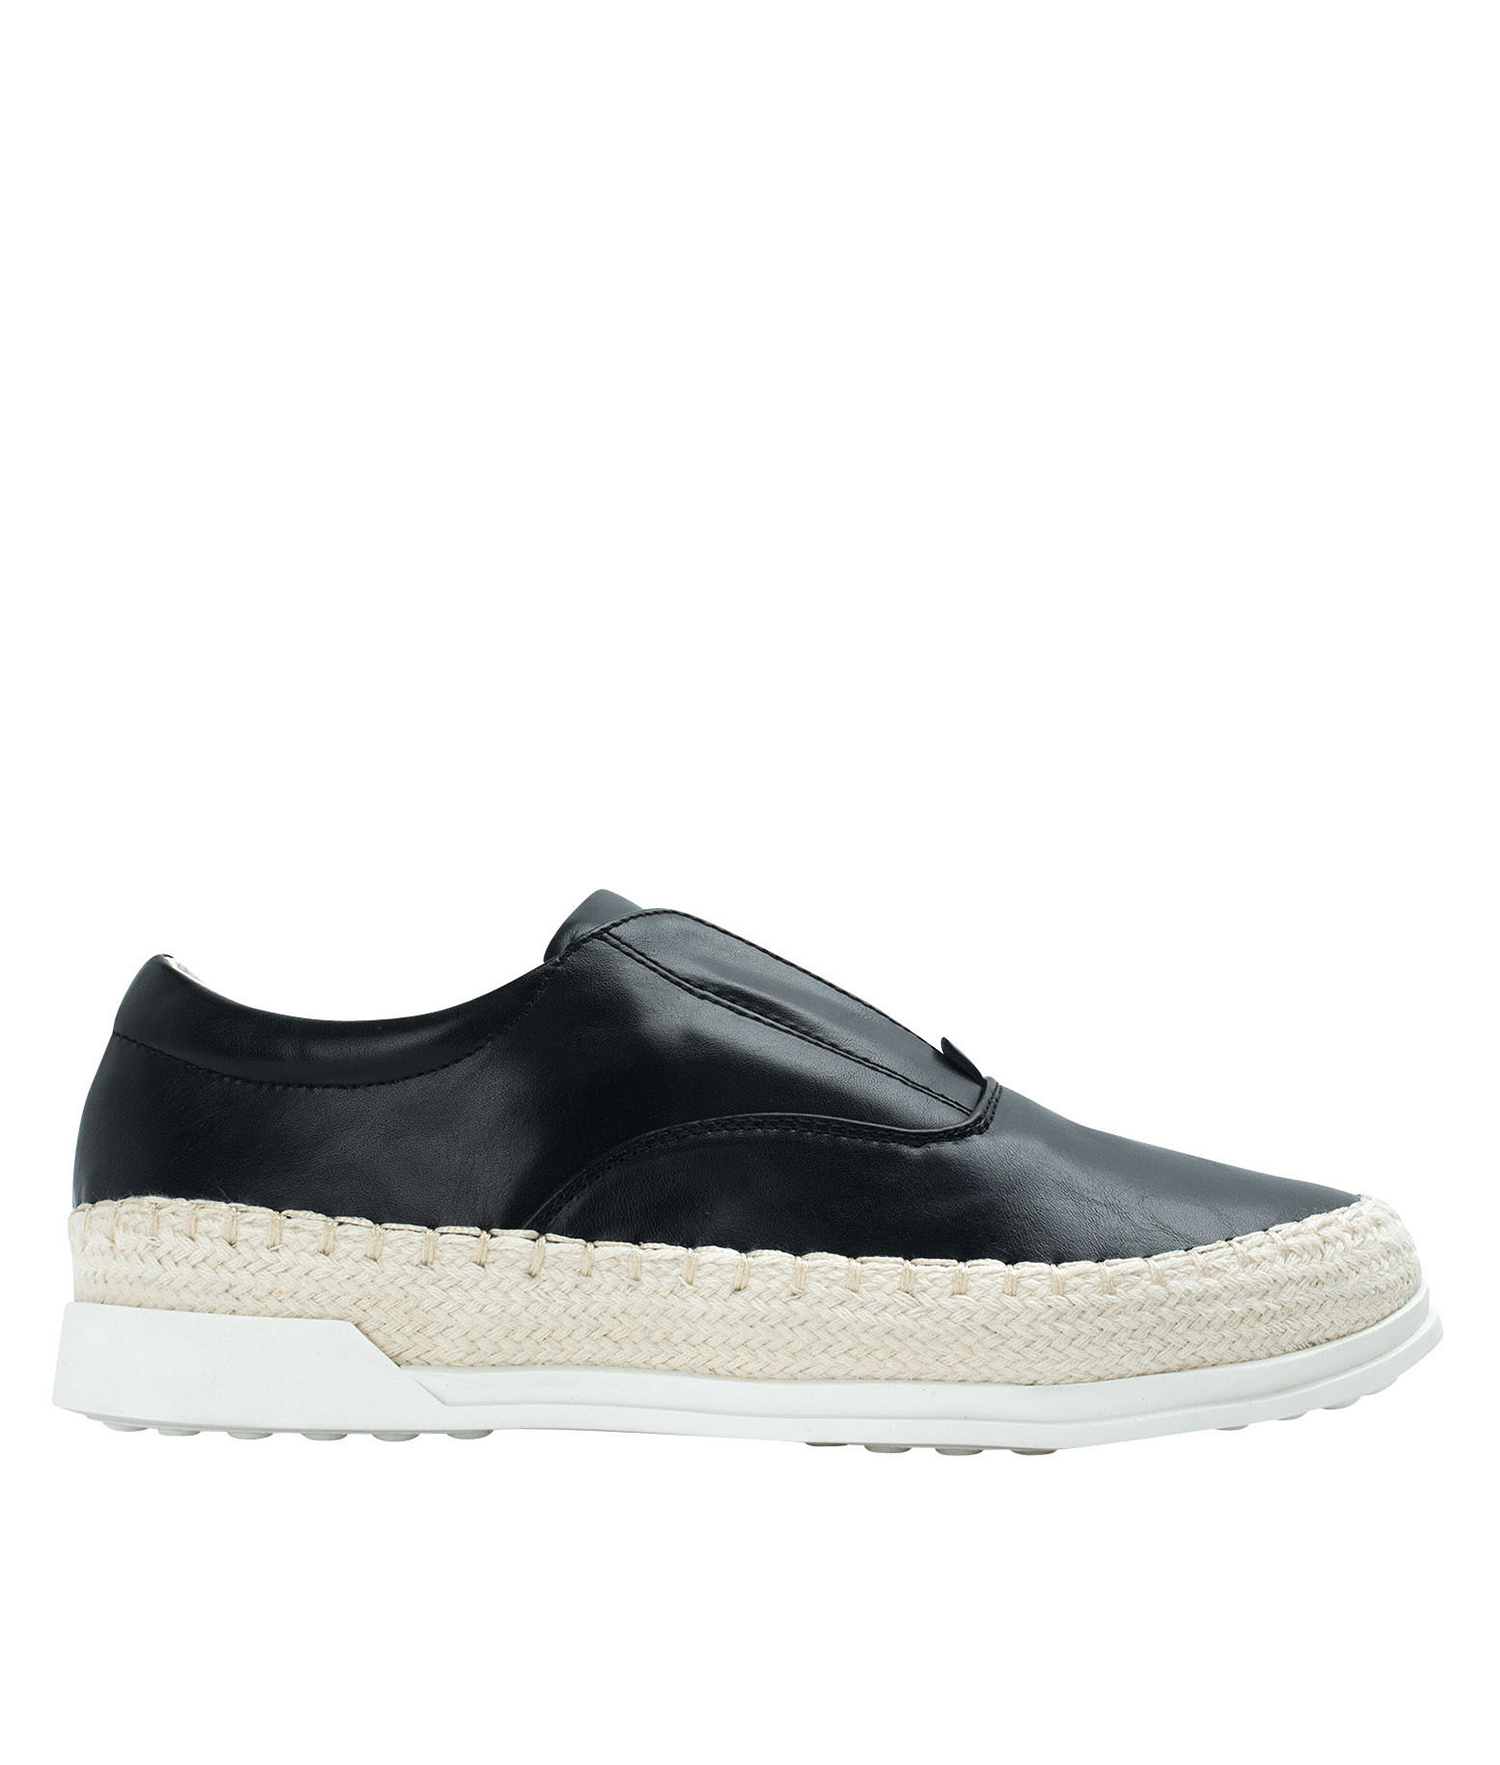 AnnaKastle Womens Espadrille Laceless Slip-On Sneakers Black